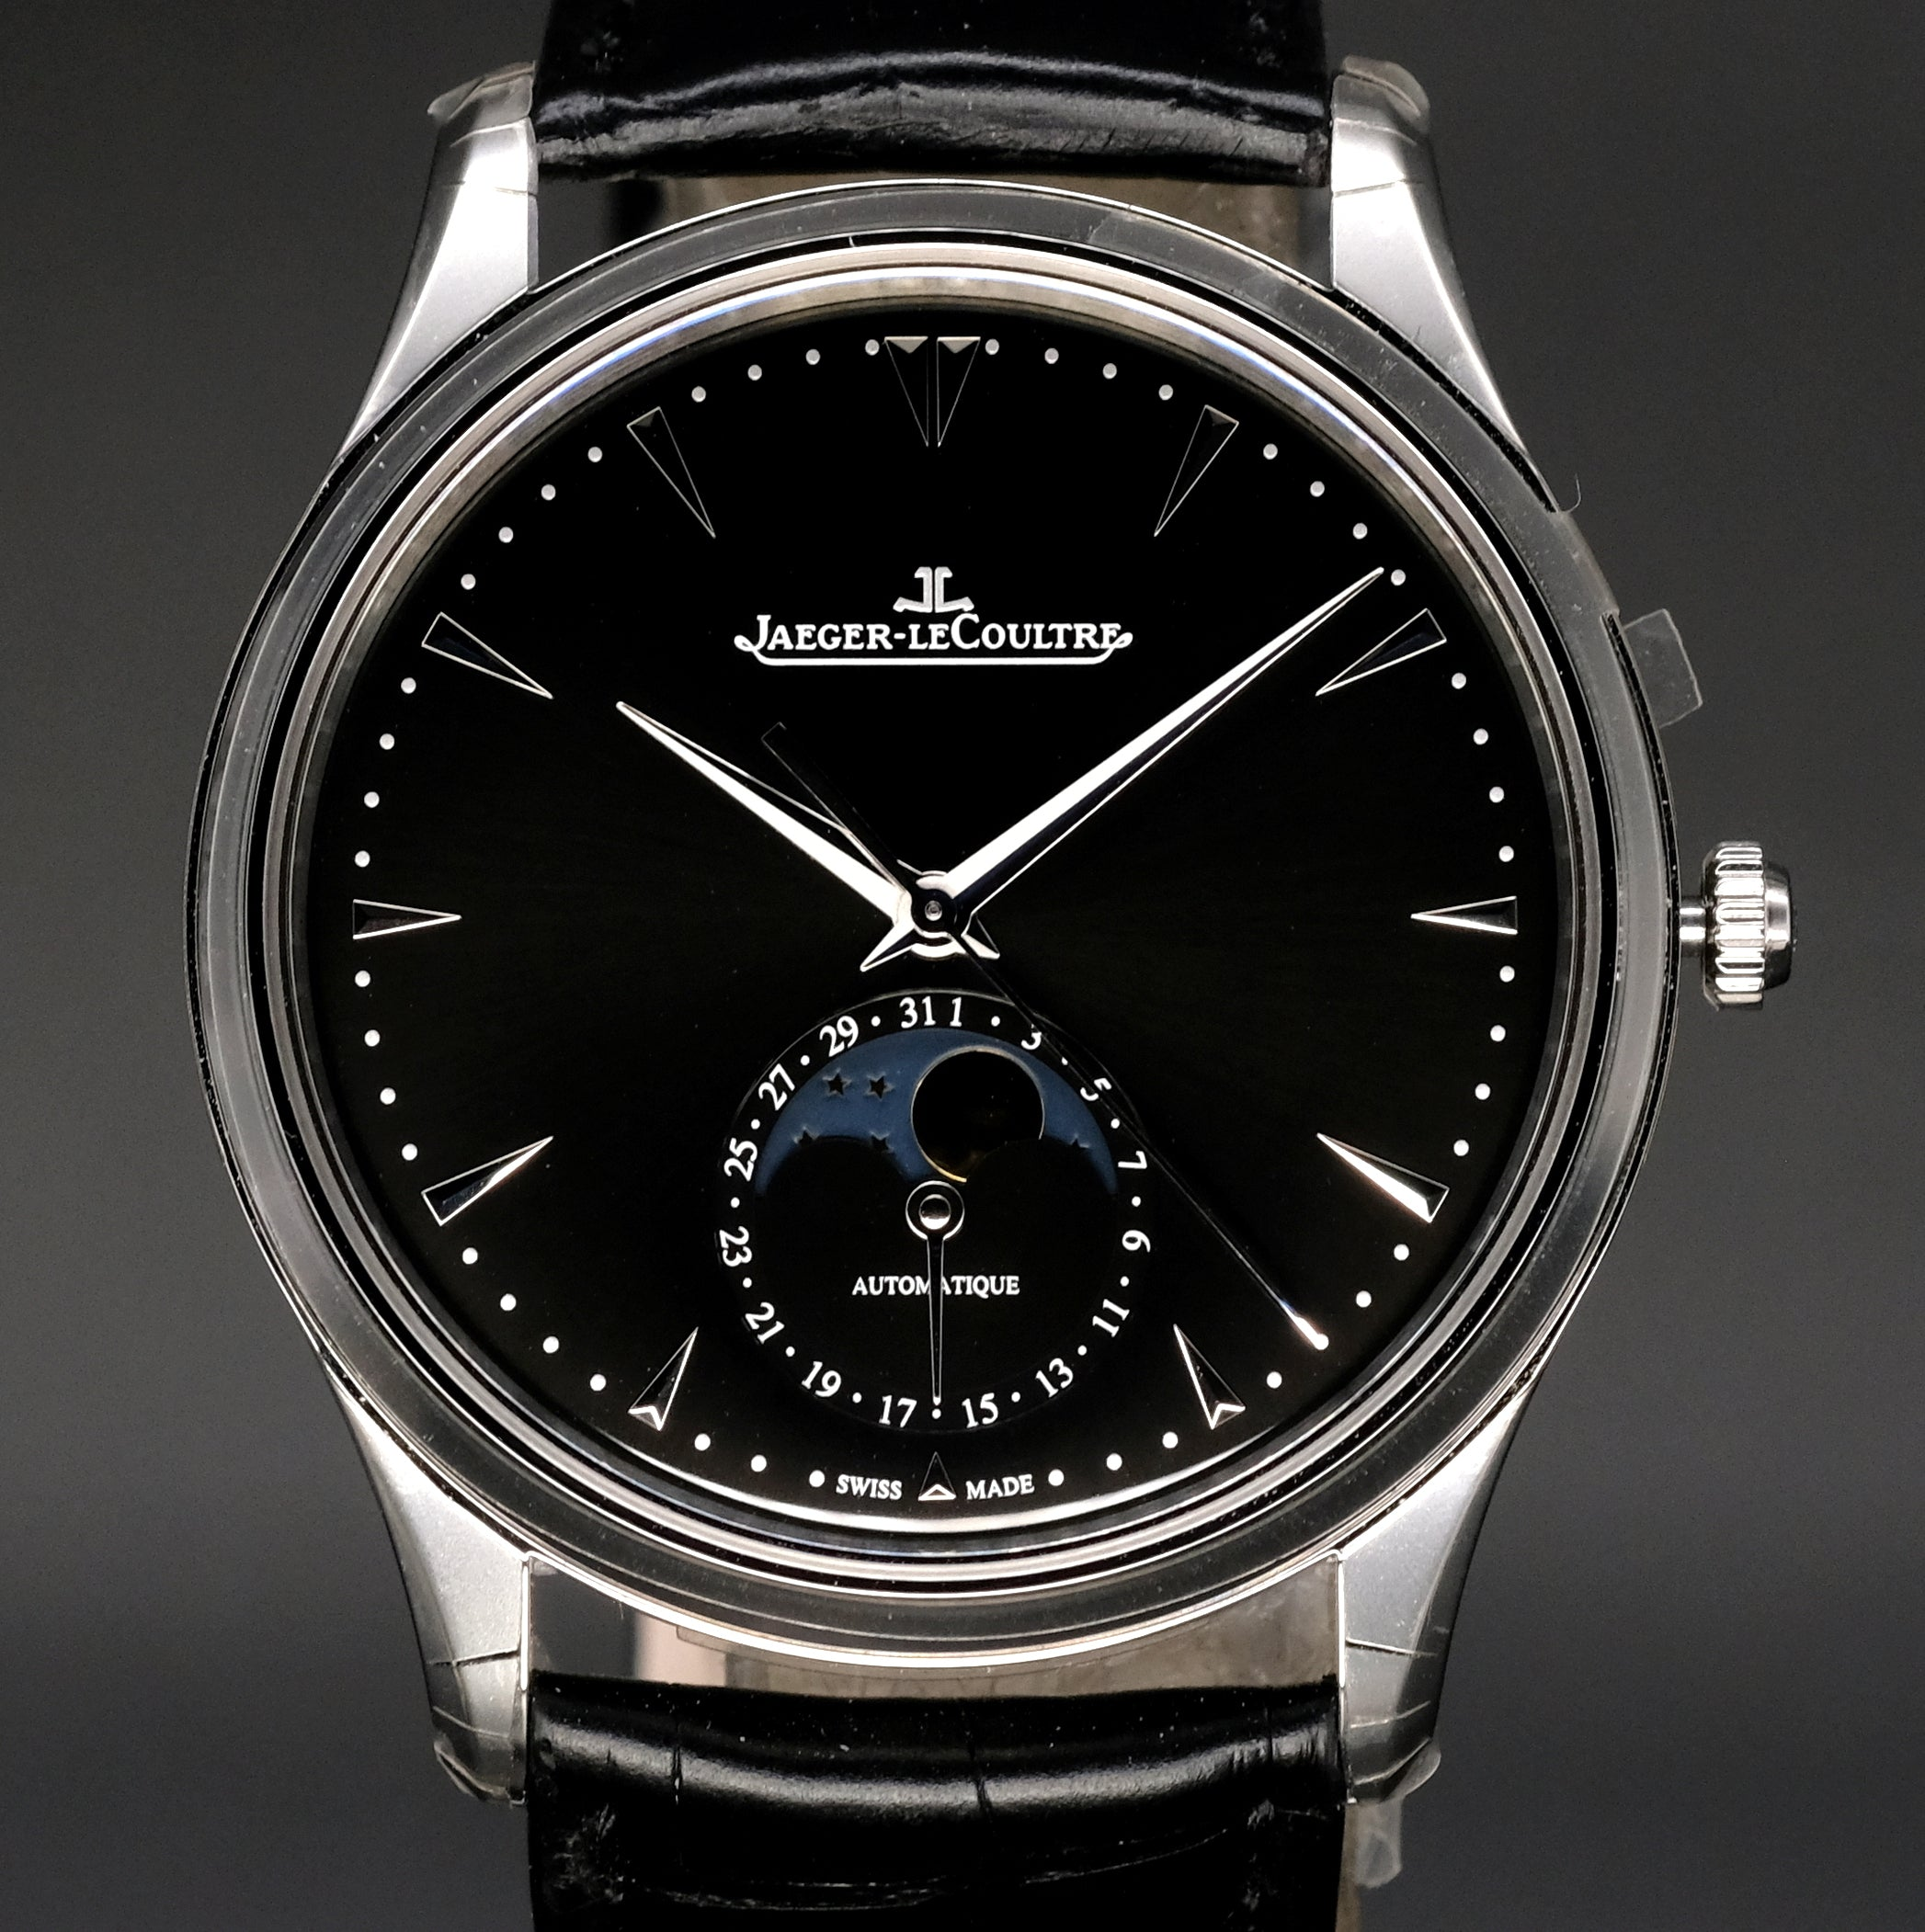 [Brand New Watch] Jaeger-LeCoultre Master Ultra Thin Moon 39mm Q1368470